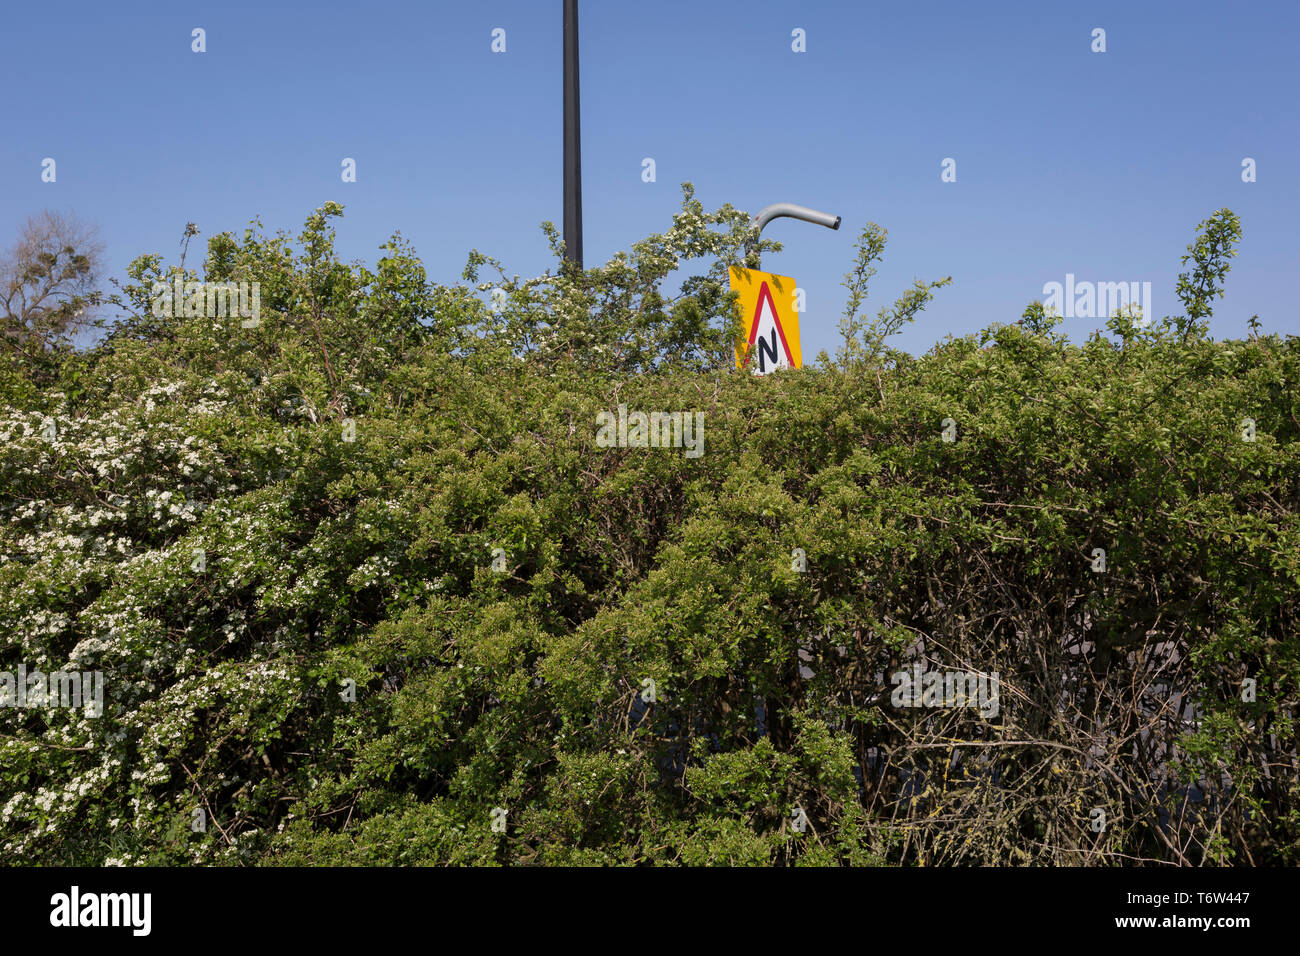 A triangular warning sign for Double Bend seen over the hedgerow of a car park in Nailsea, on 21st April 2019, in Nailsea, North Somerset, England - Stock Image